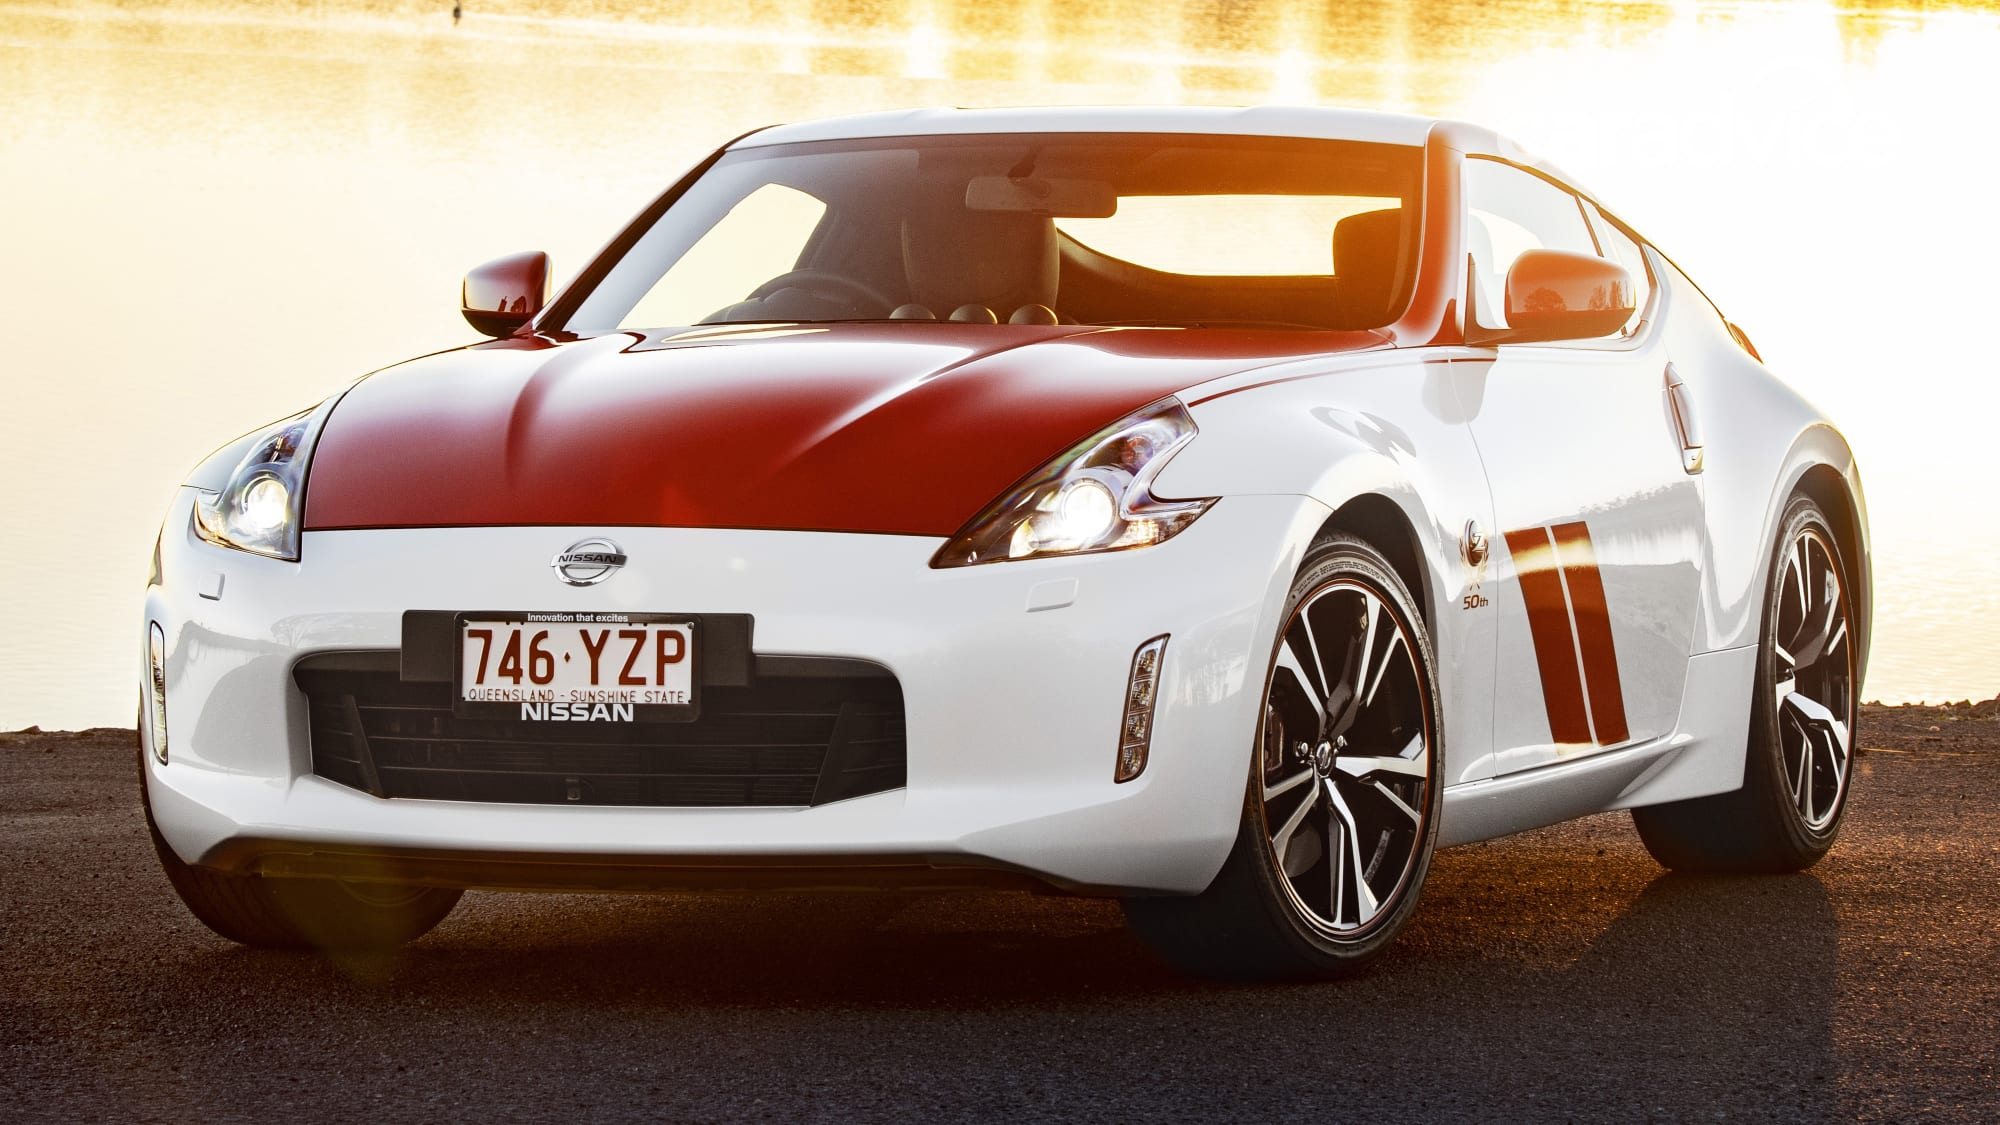 2020 nissan 370z pricing and specs | caradvice